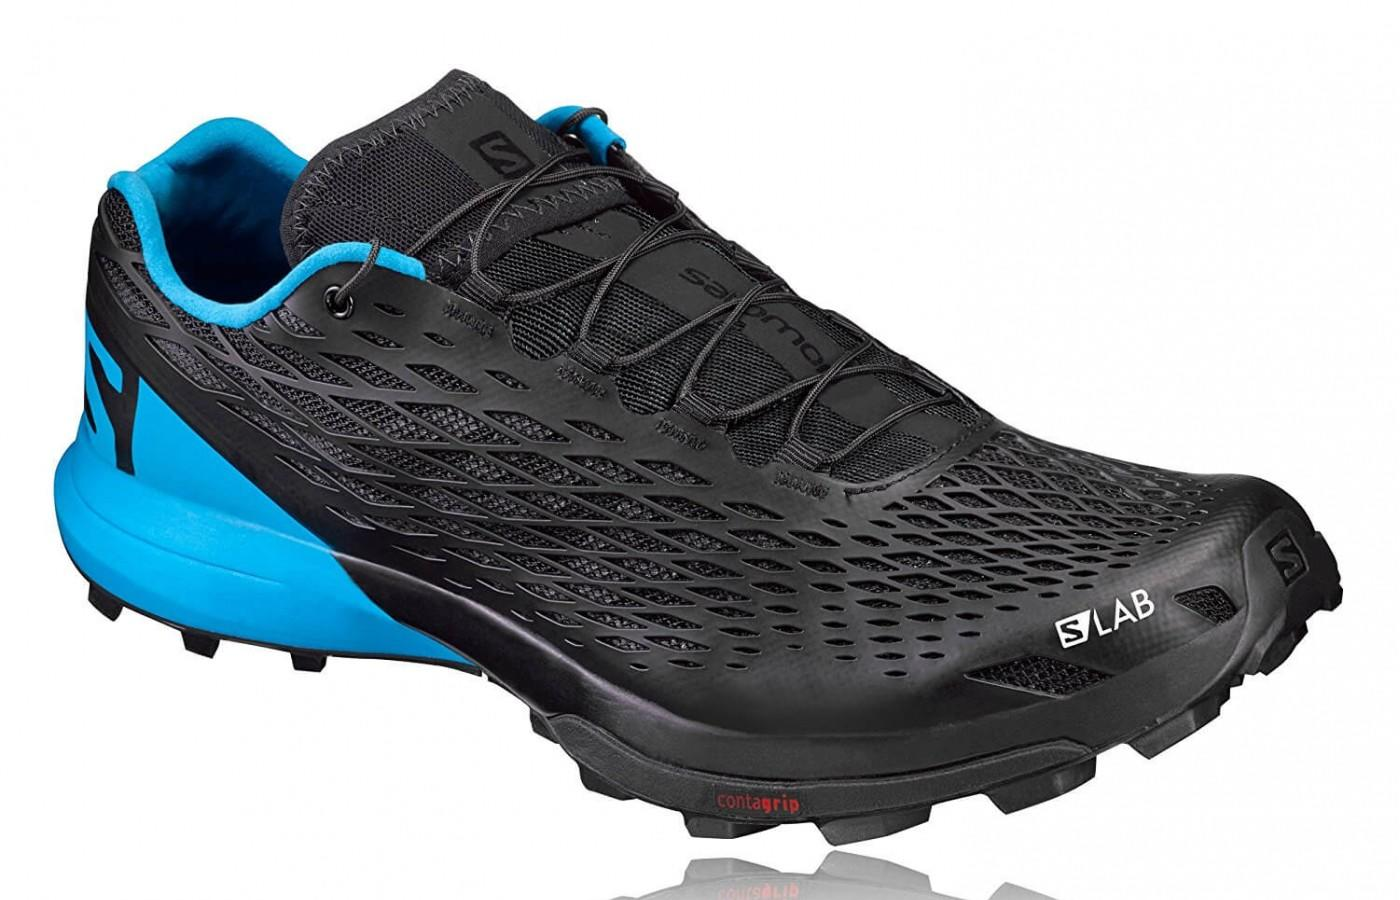 the Salomon S-Lab Xa Amphib shown from the front/side